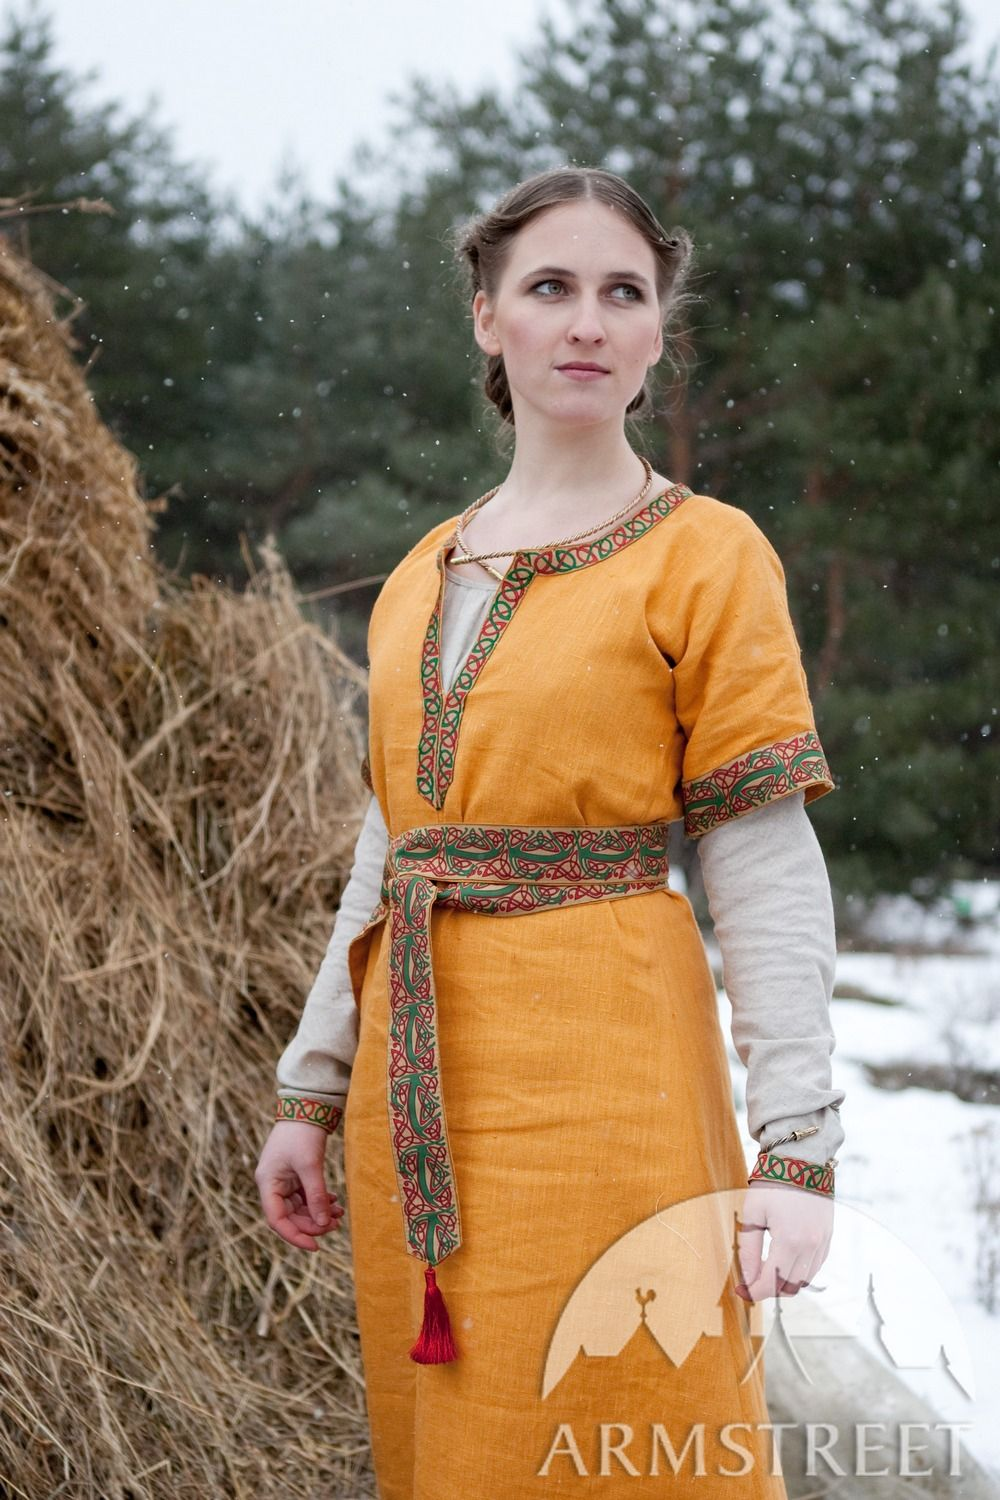 Full dark ages North Europe womens medieval travel dress